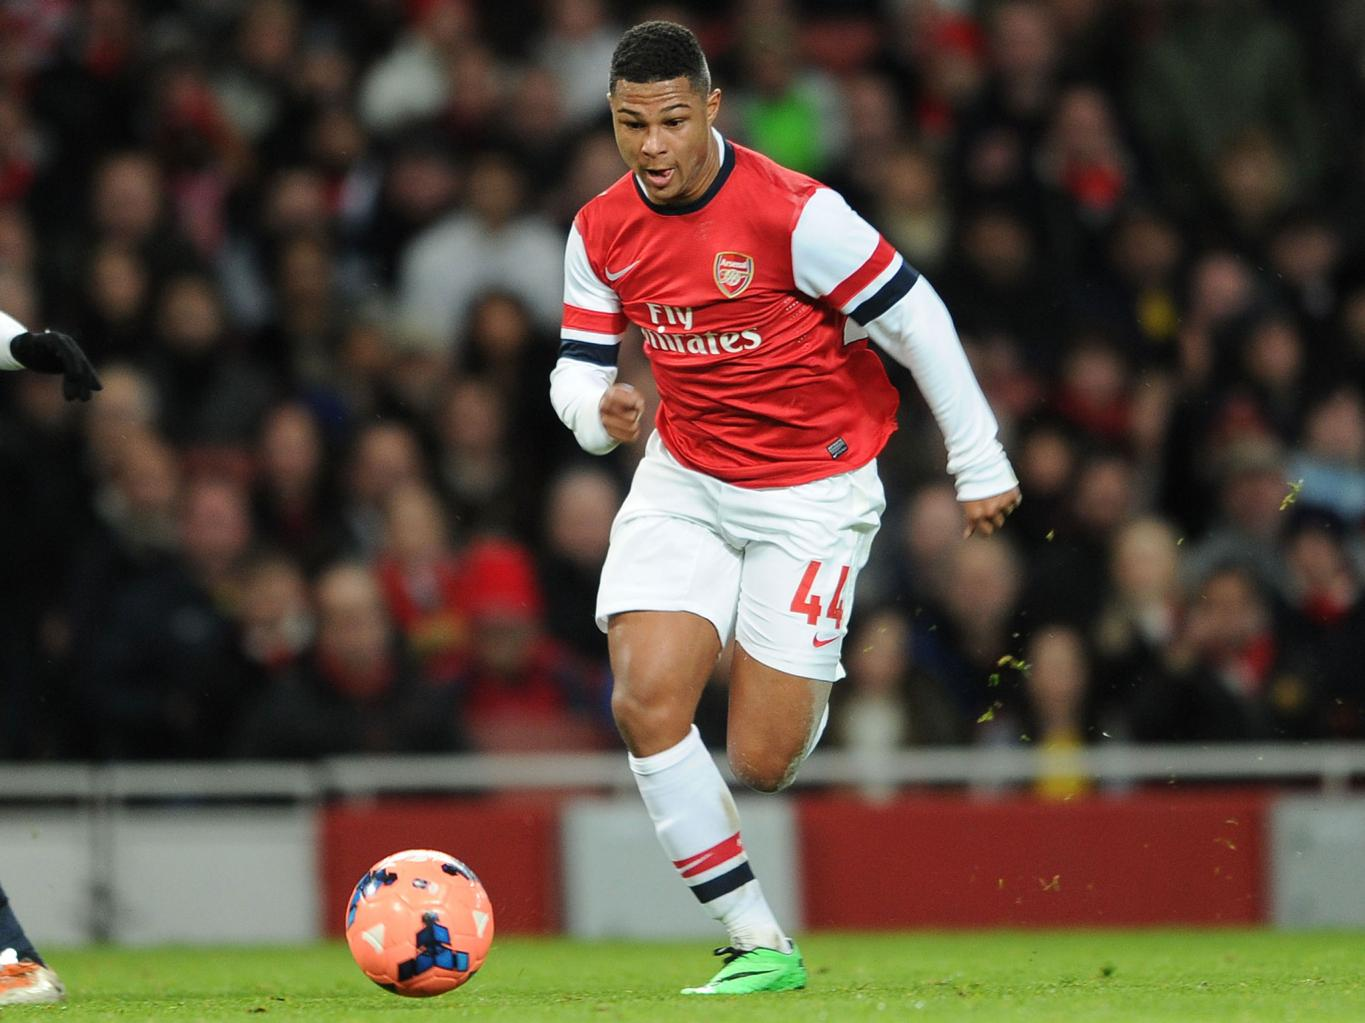 Arsenal Manager Arsene Wenger Tips Serge Gnabry To Make A Late Bid